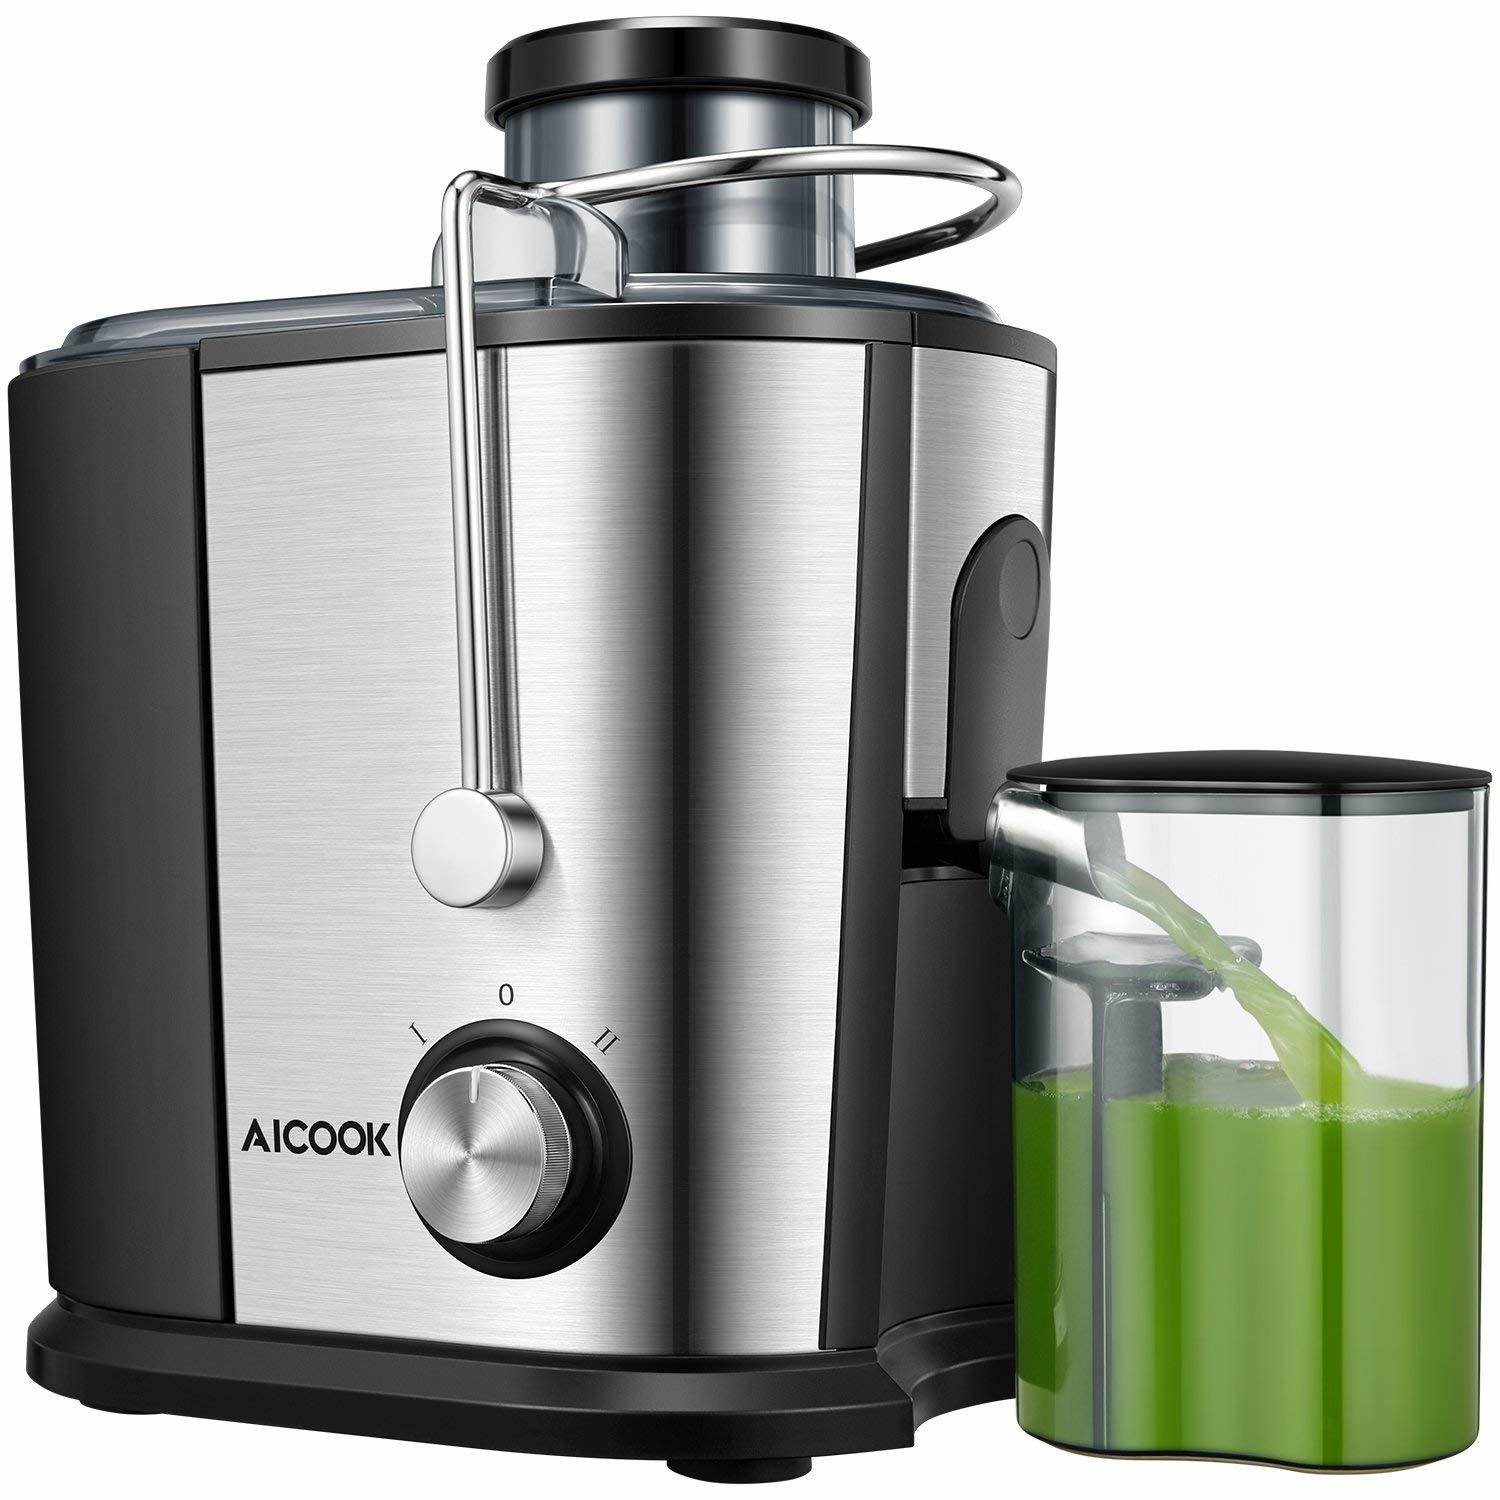 Juicer Compact Juice Extractor, Aicook Wide Mouth Juicer Machine BPA-Free, Dual Speed Setting Centrifugal Juicer with Anti-drip Function, Stainless Steel Juicer 00005